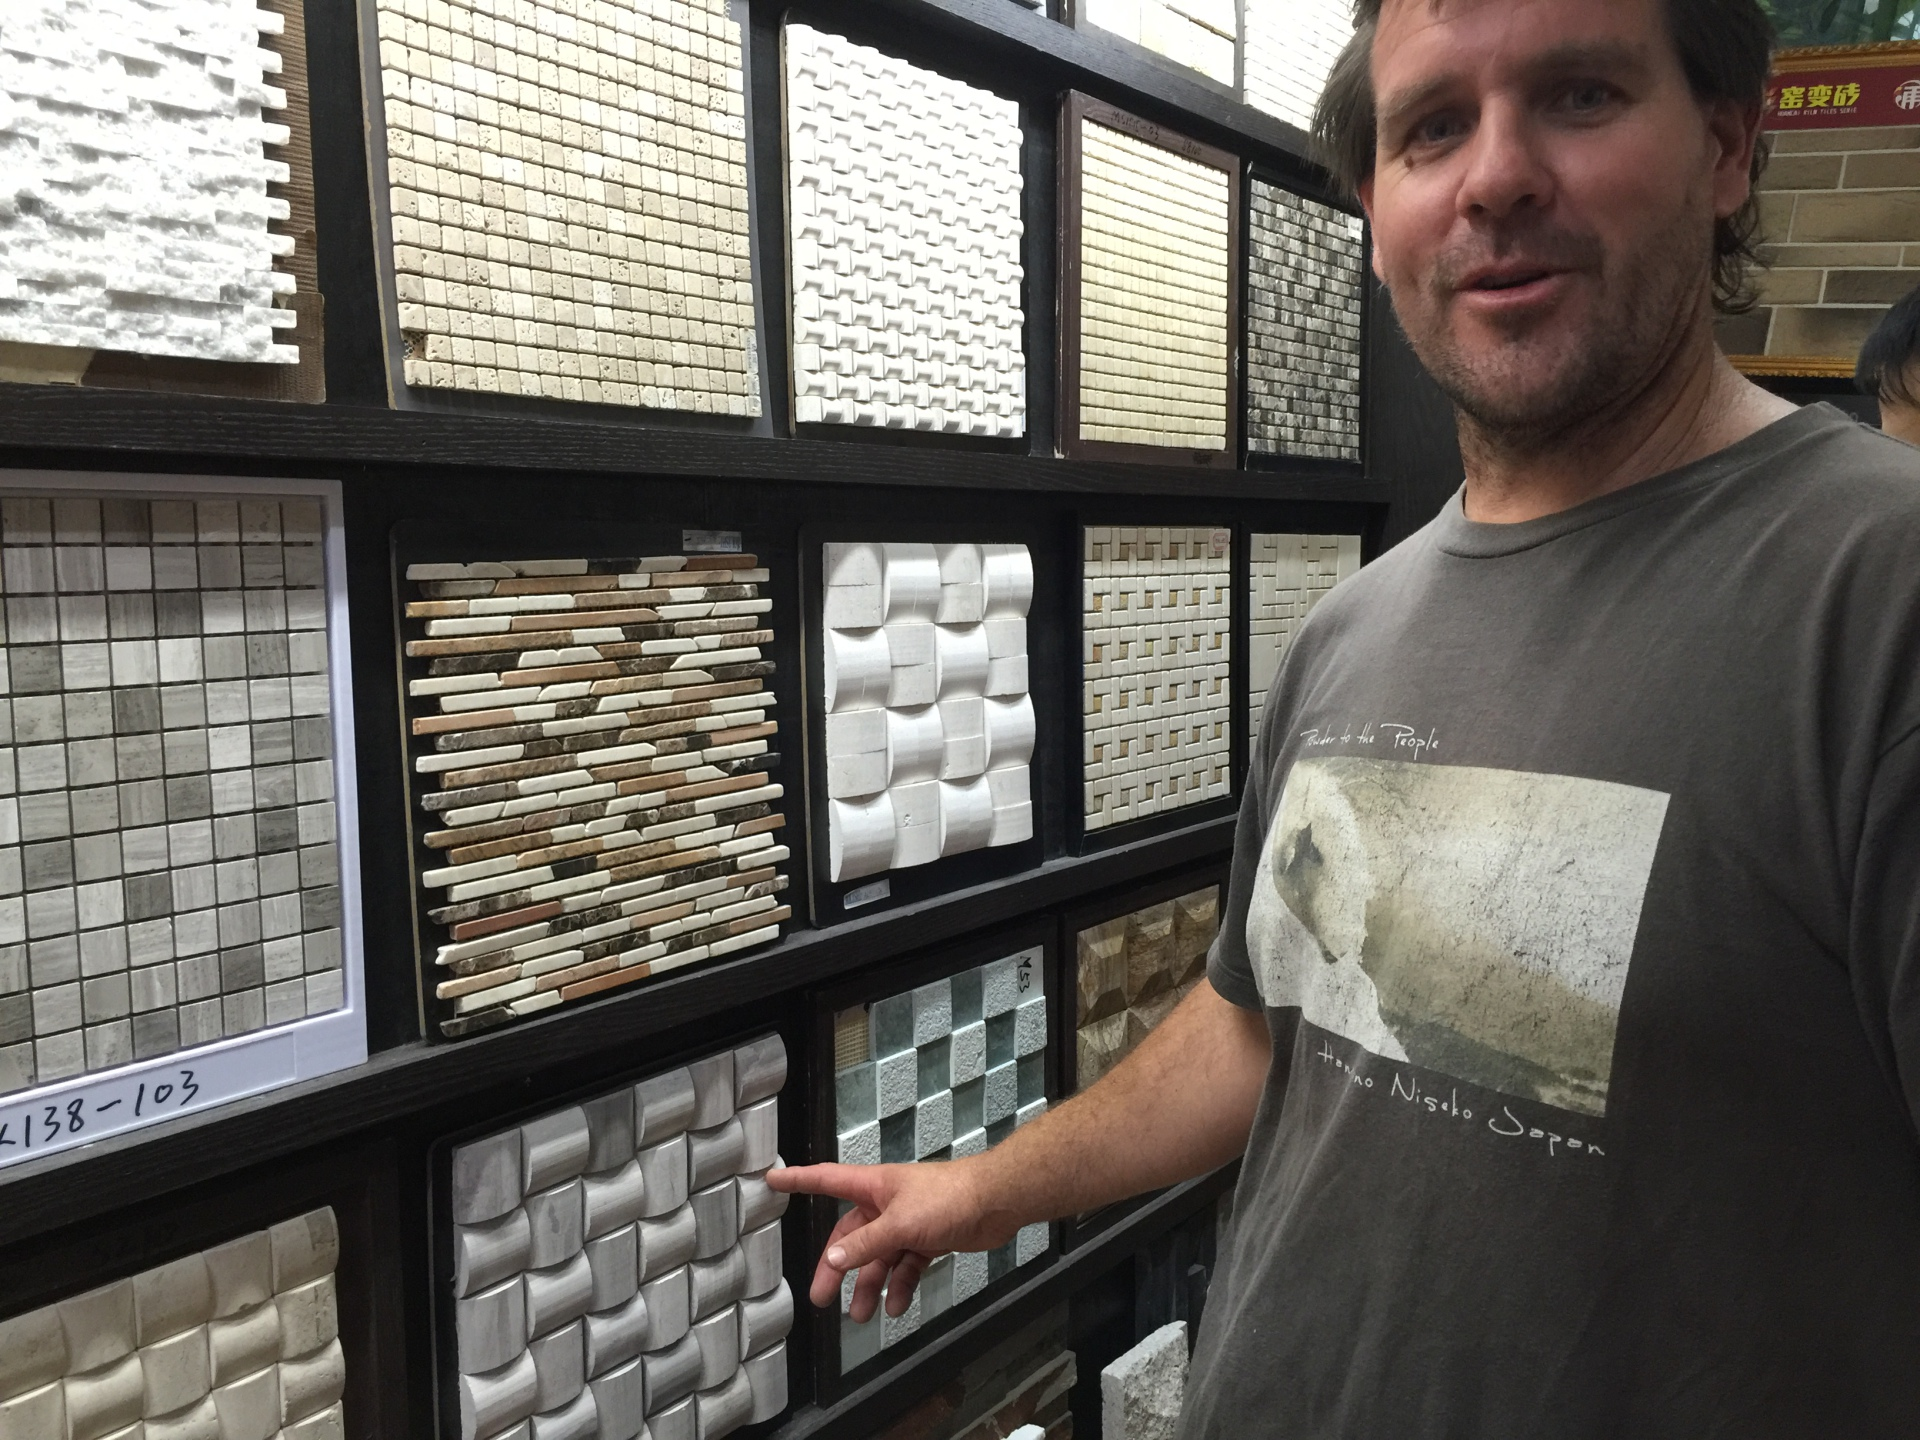 Hundreds of feature tiles to choose from